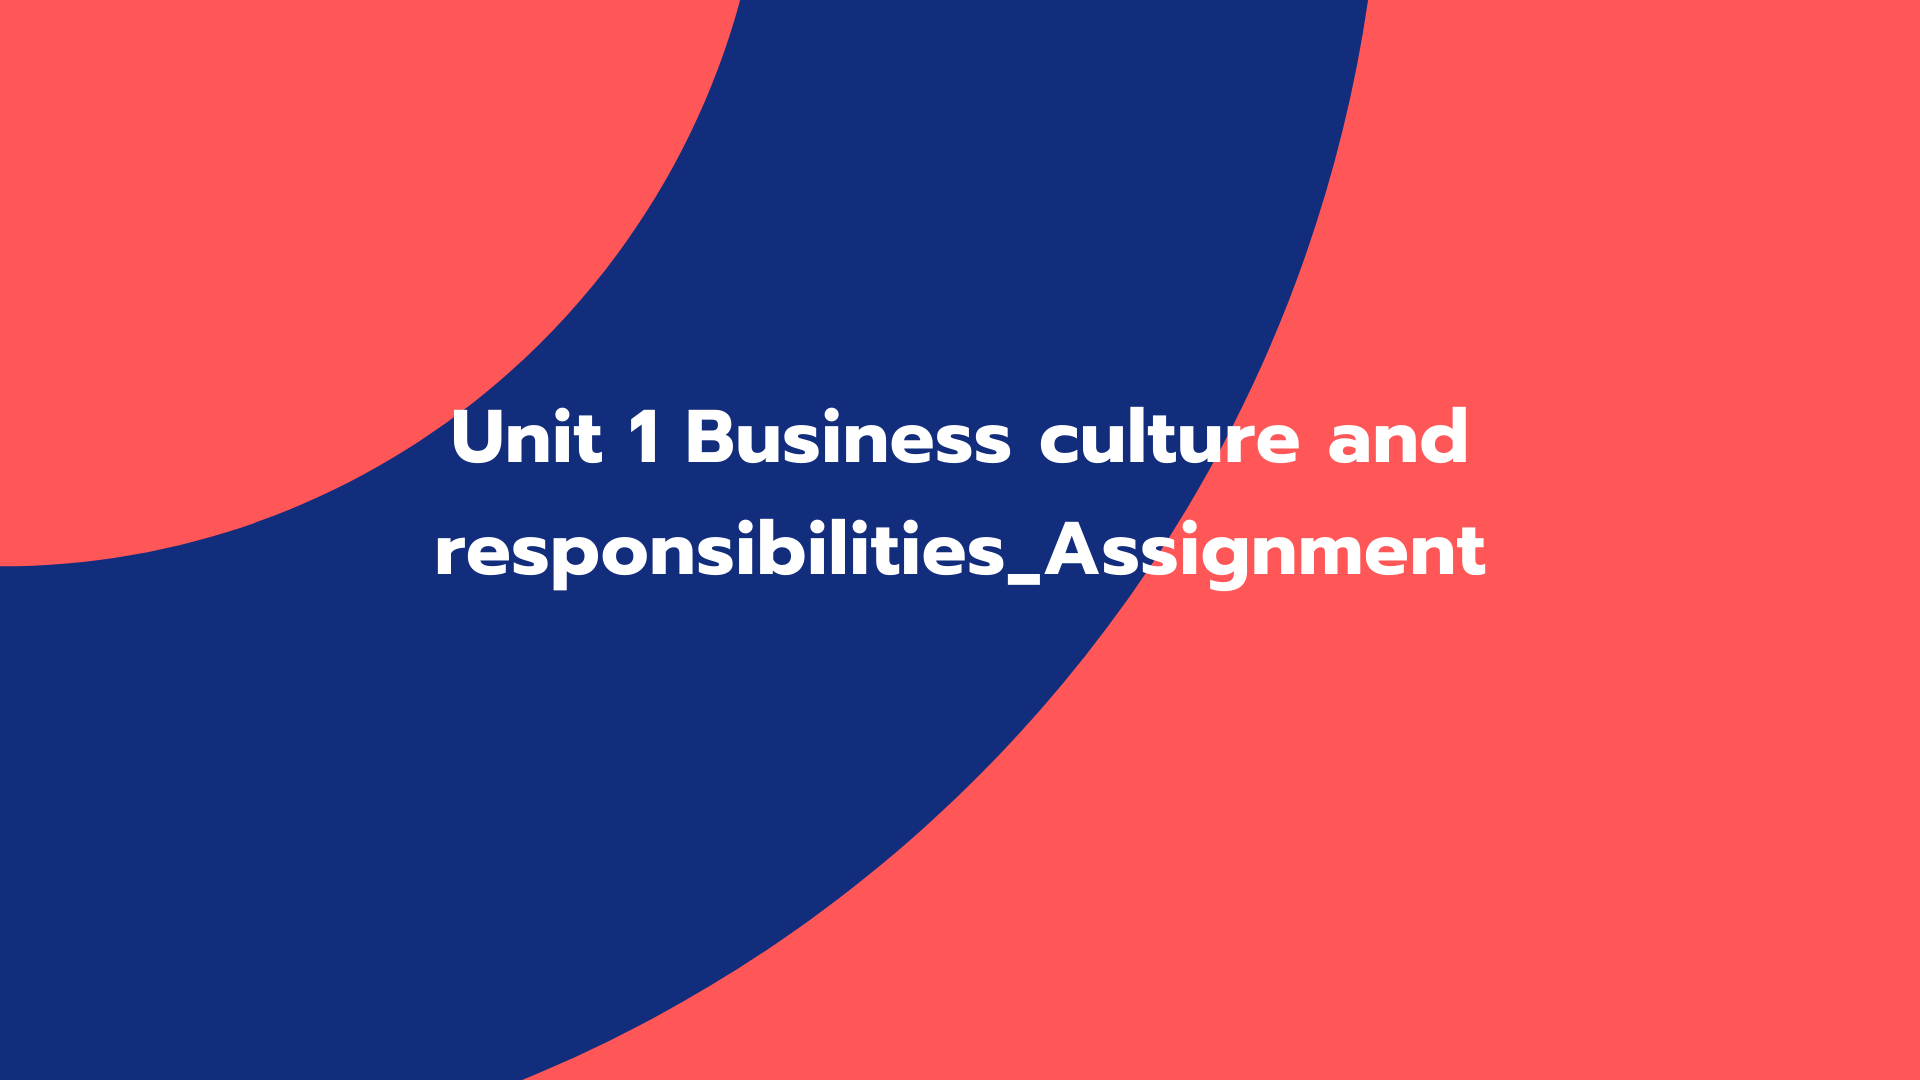 Unit 1 Business culture and responsibilities_Assignment